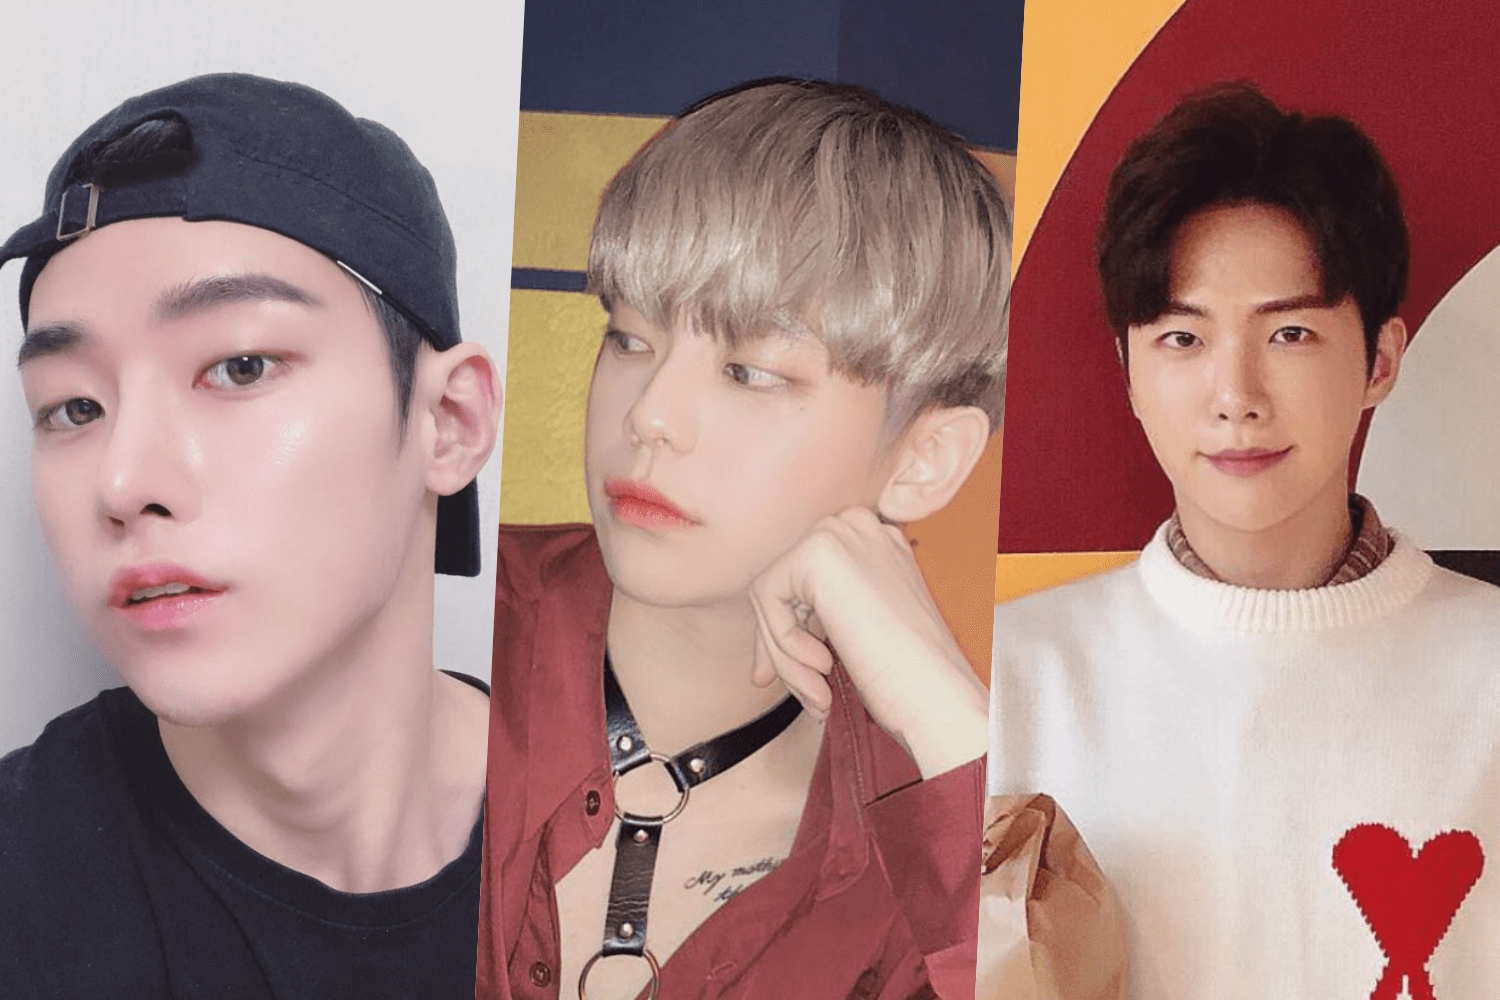 Feature] Our Top 5 Male K-Beauty Influencer Picks - HallyuSG